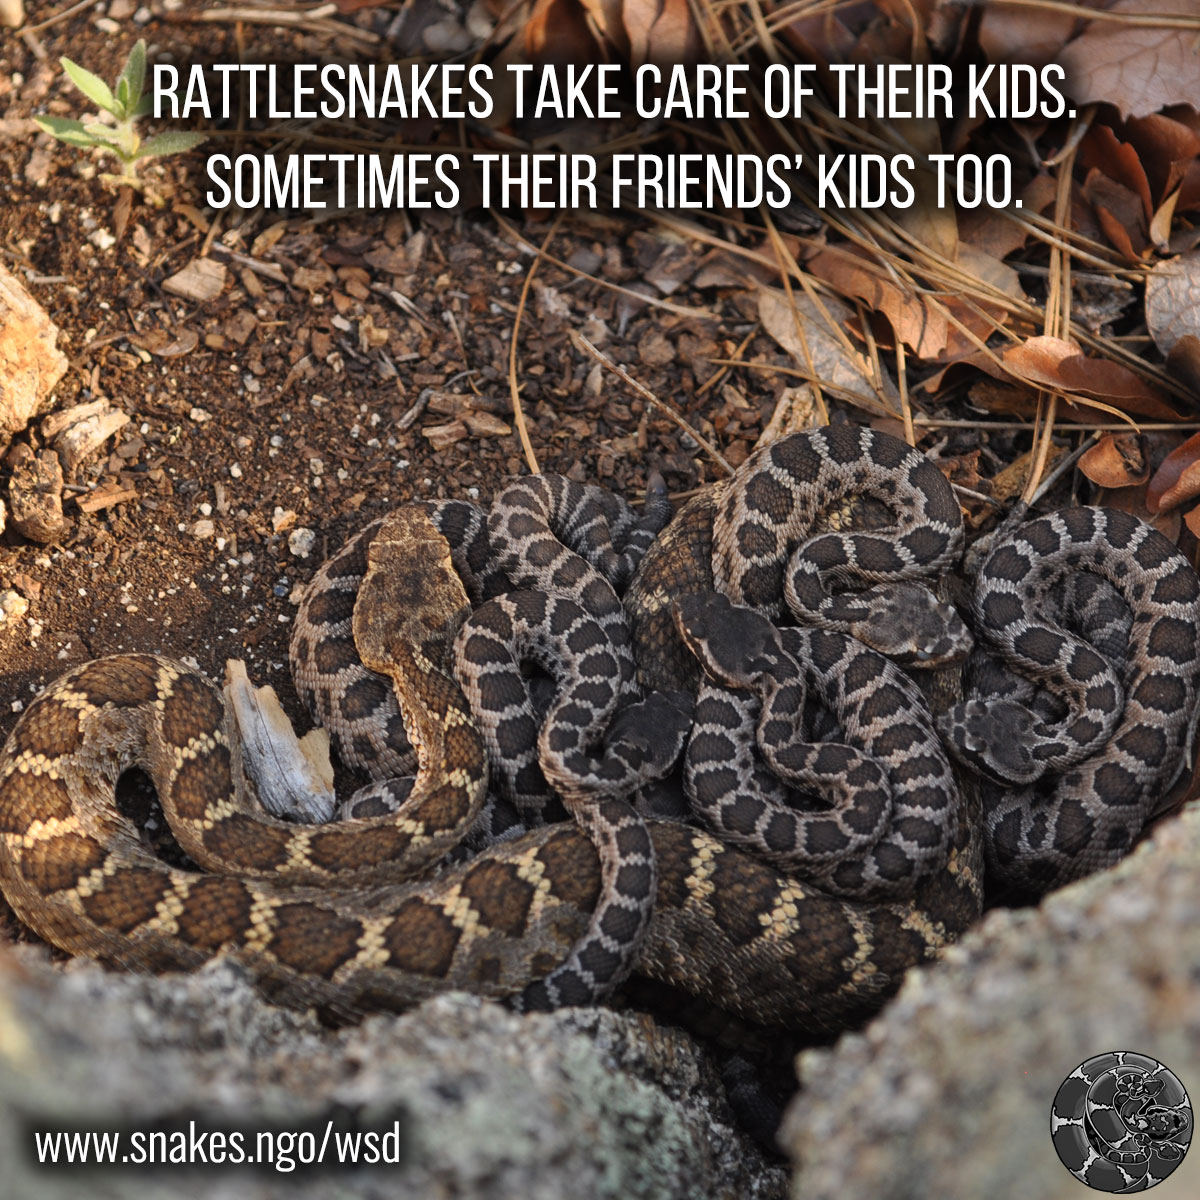 Rattlesnakes take care of their kids. Sometimes their friends' kids too.